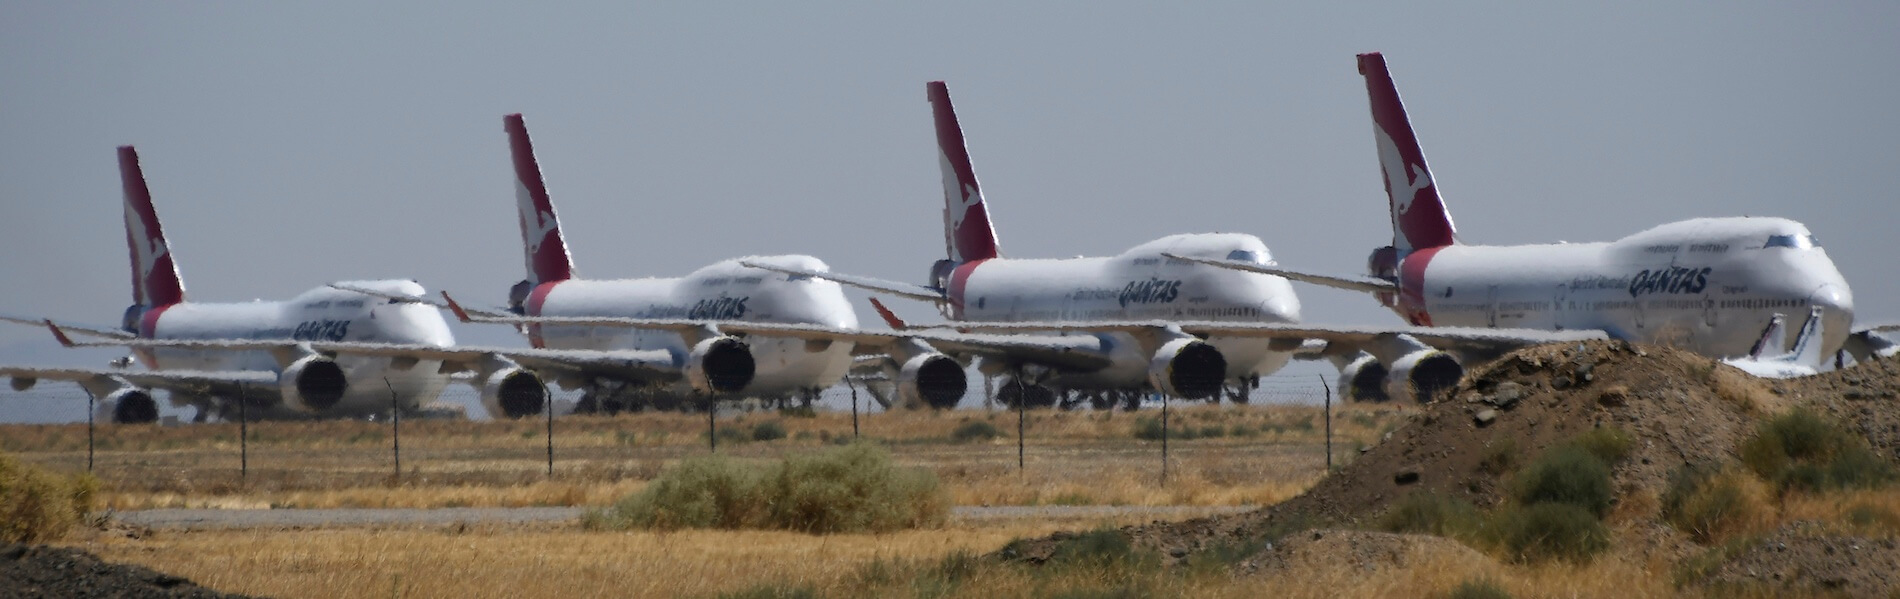 Mojave Airport: parking lot of decommissioned aircraft